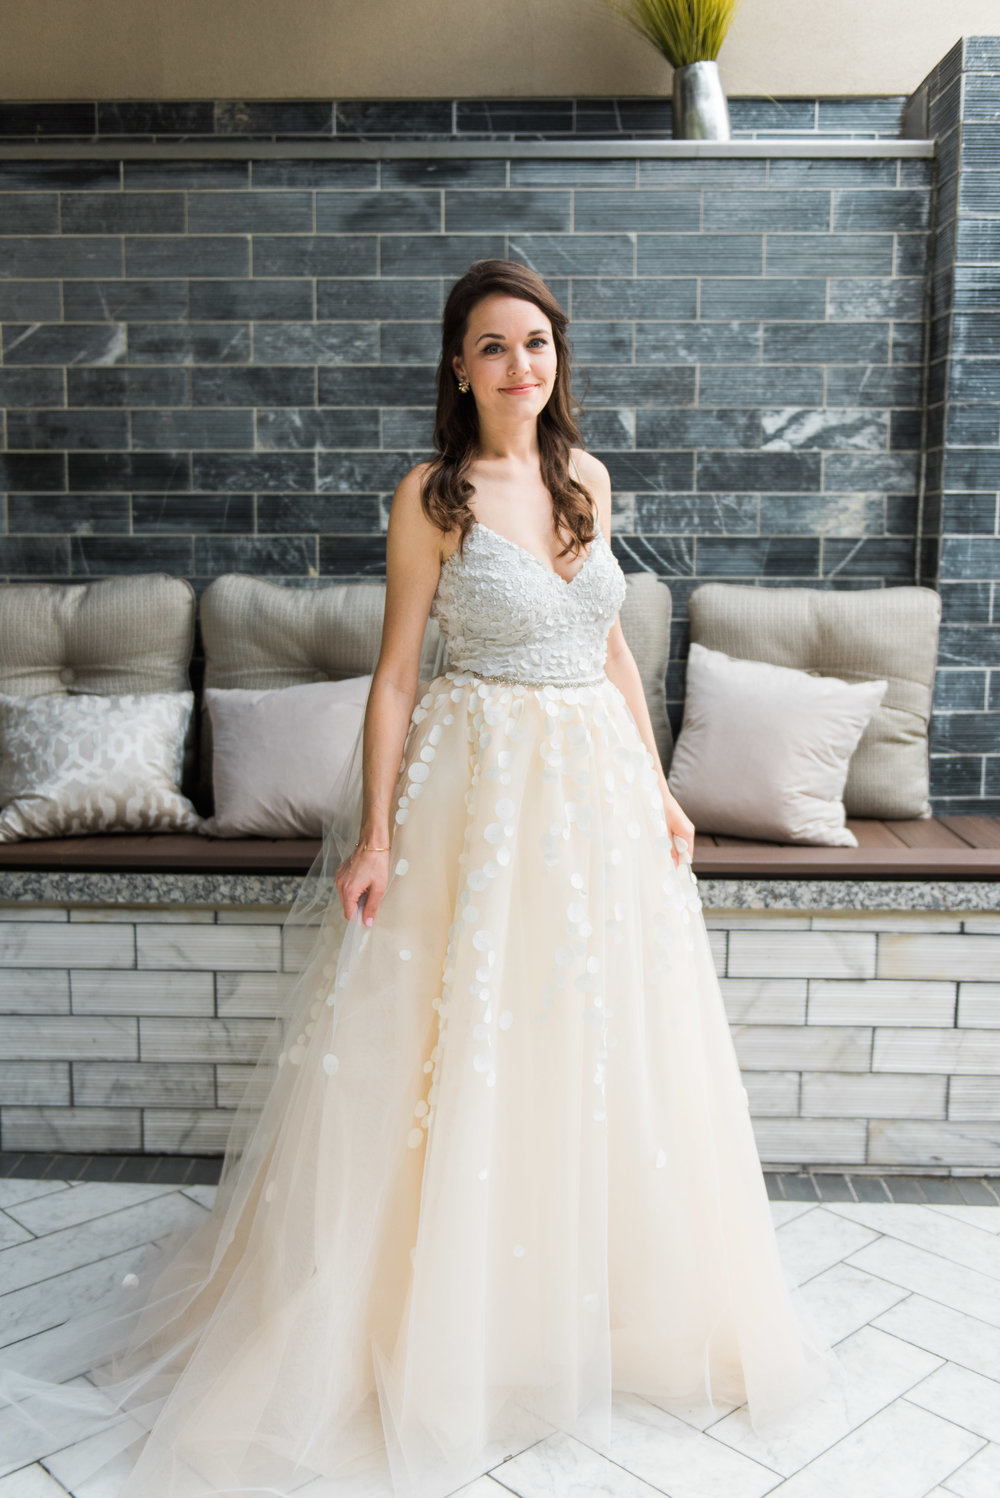 w hotel bride atlanta wedding photographer